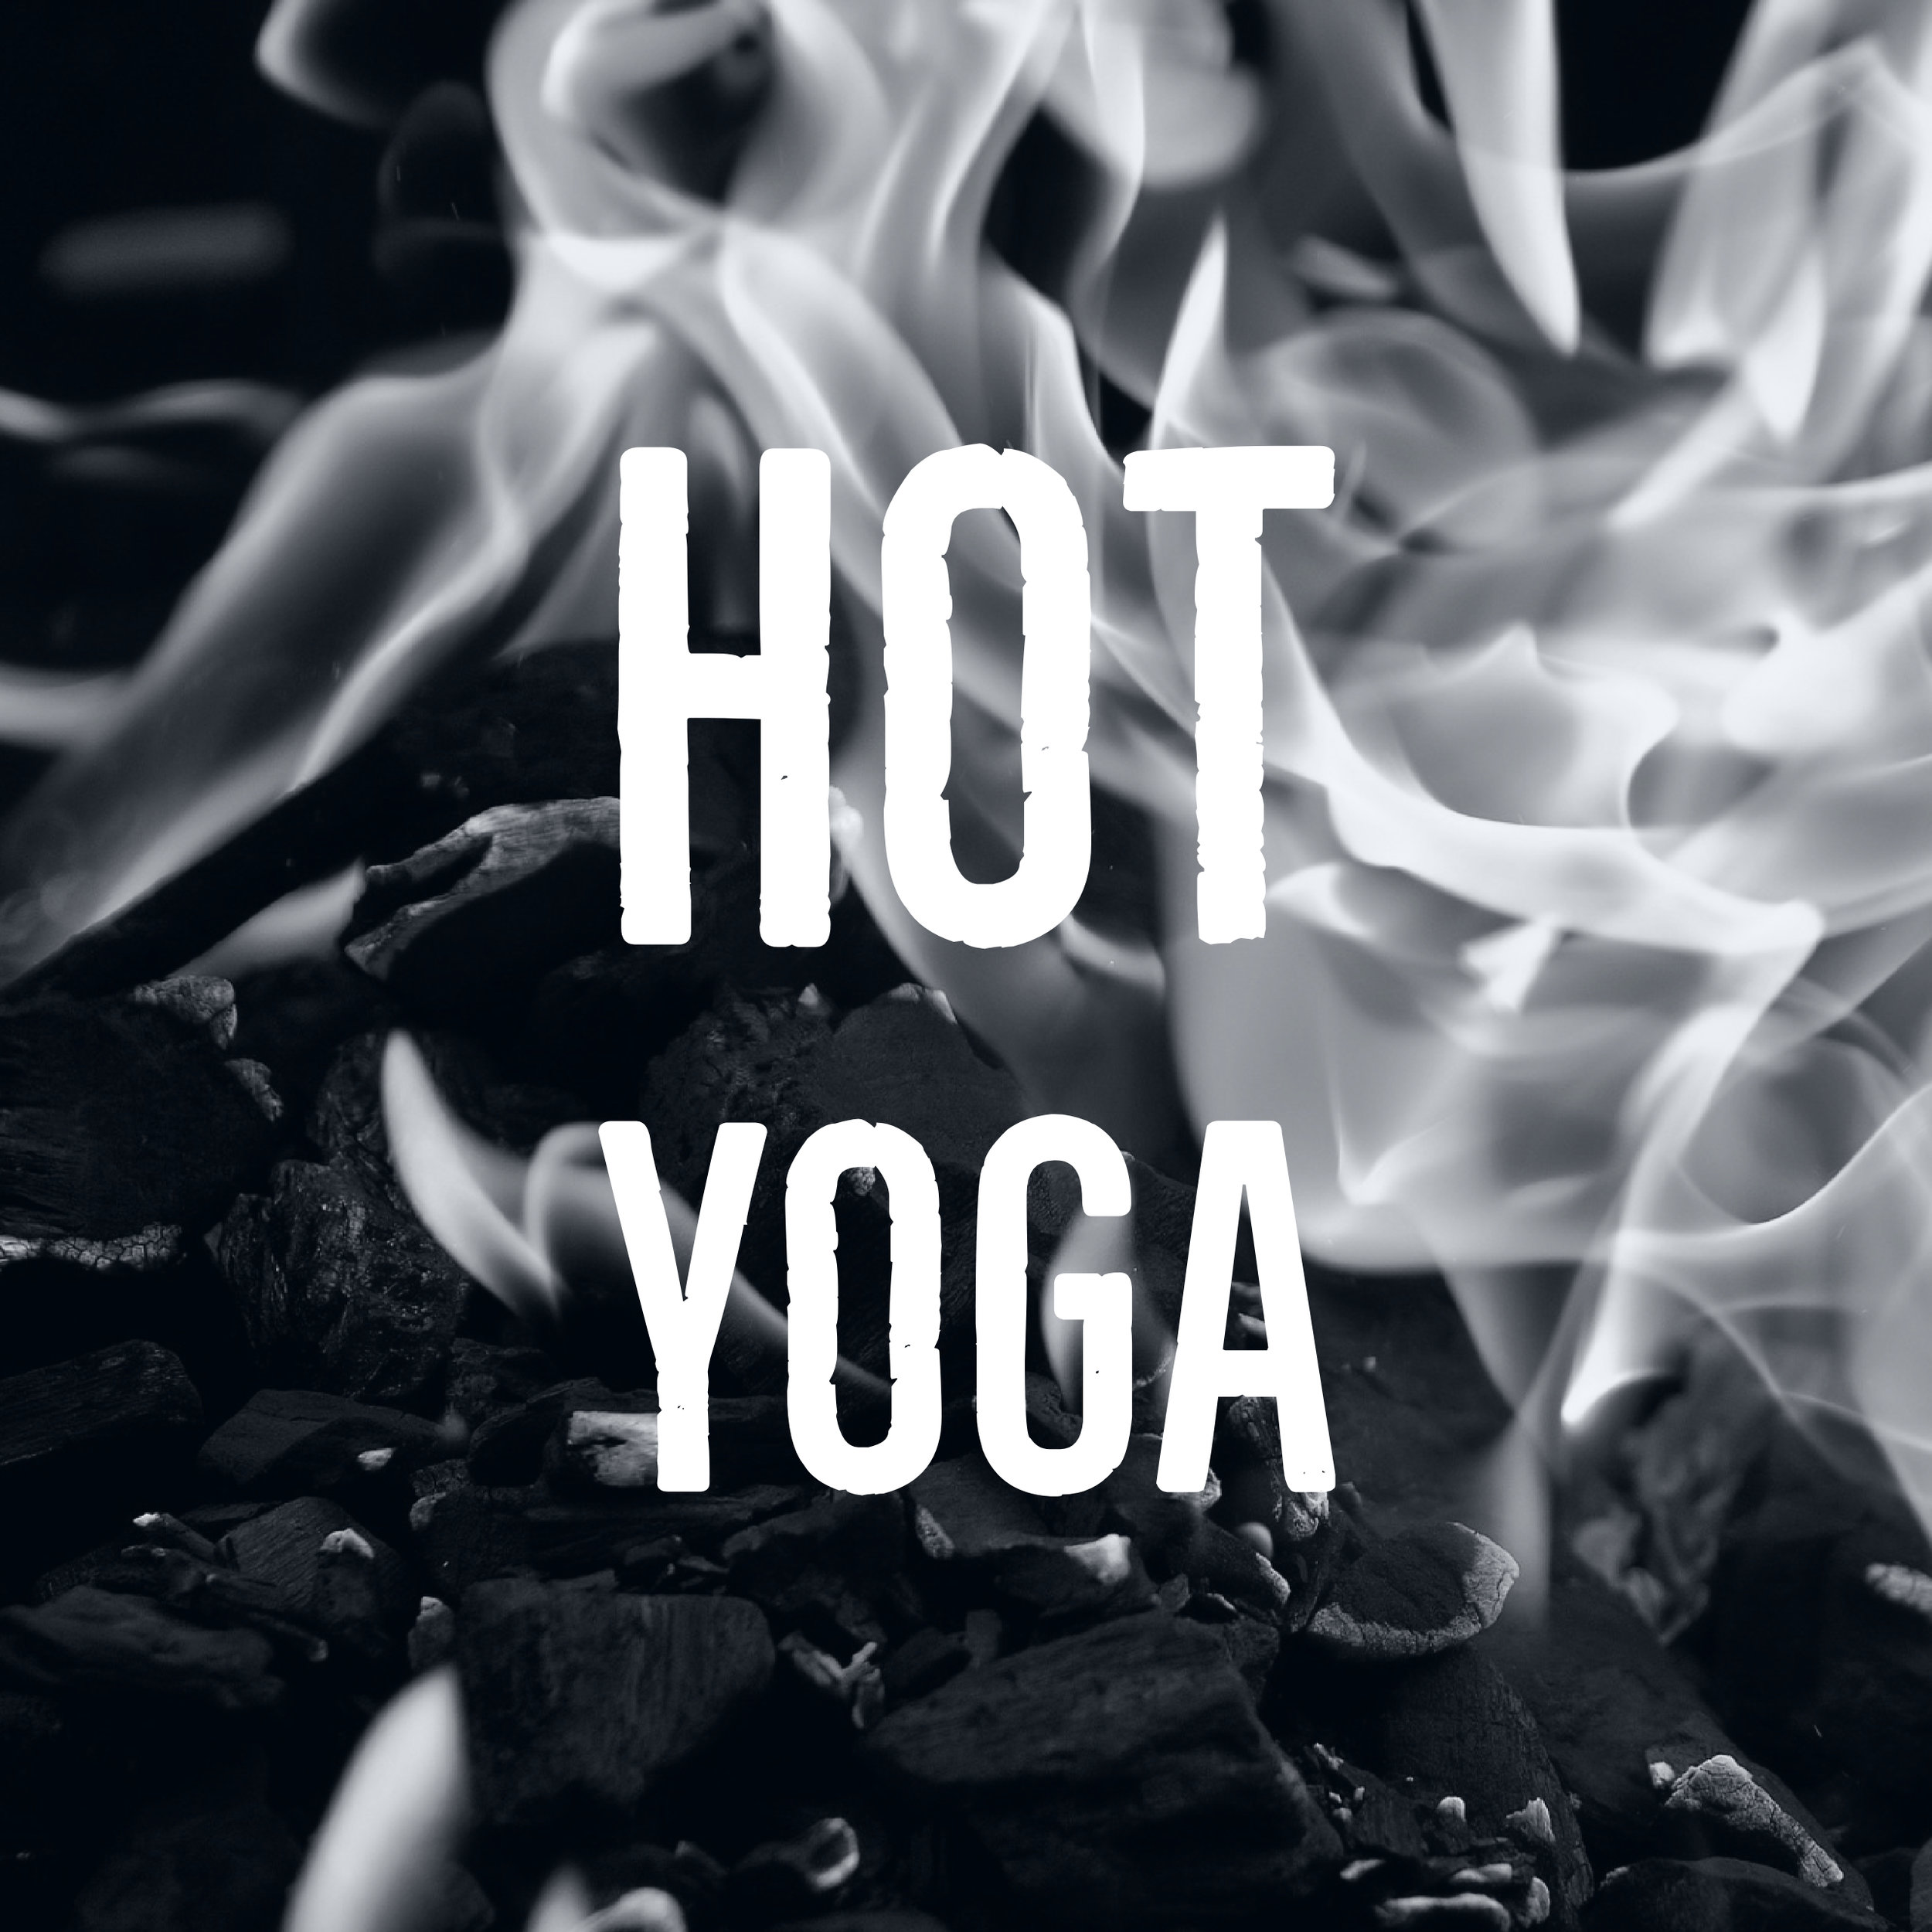 Hot Yoga - Hot Yoga is a one hour class with an athletic style of vinyasa (flow) yoga practiced in a room heated to 85-95 degrees. Static postures are linked together through flowing transitions and mindful movement. This class is designed to build strength, balance, flexibility and muscular endurance.